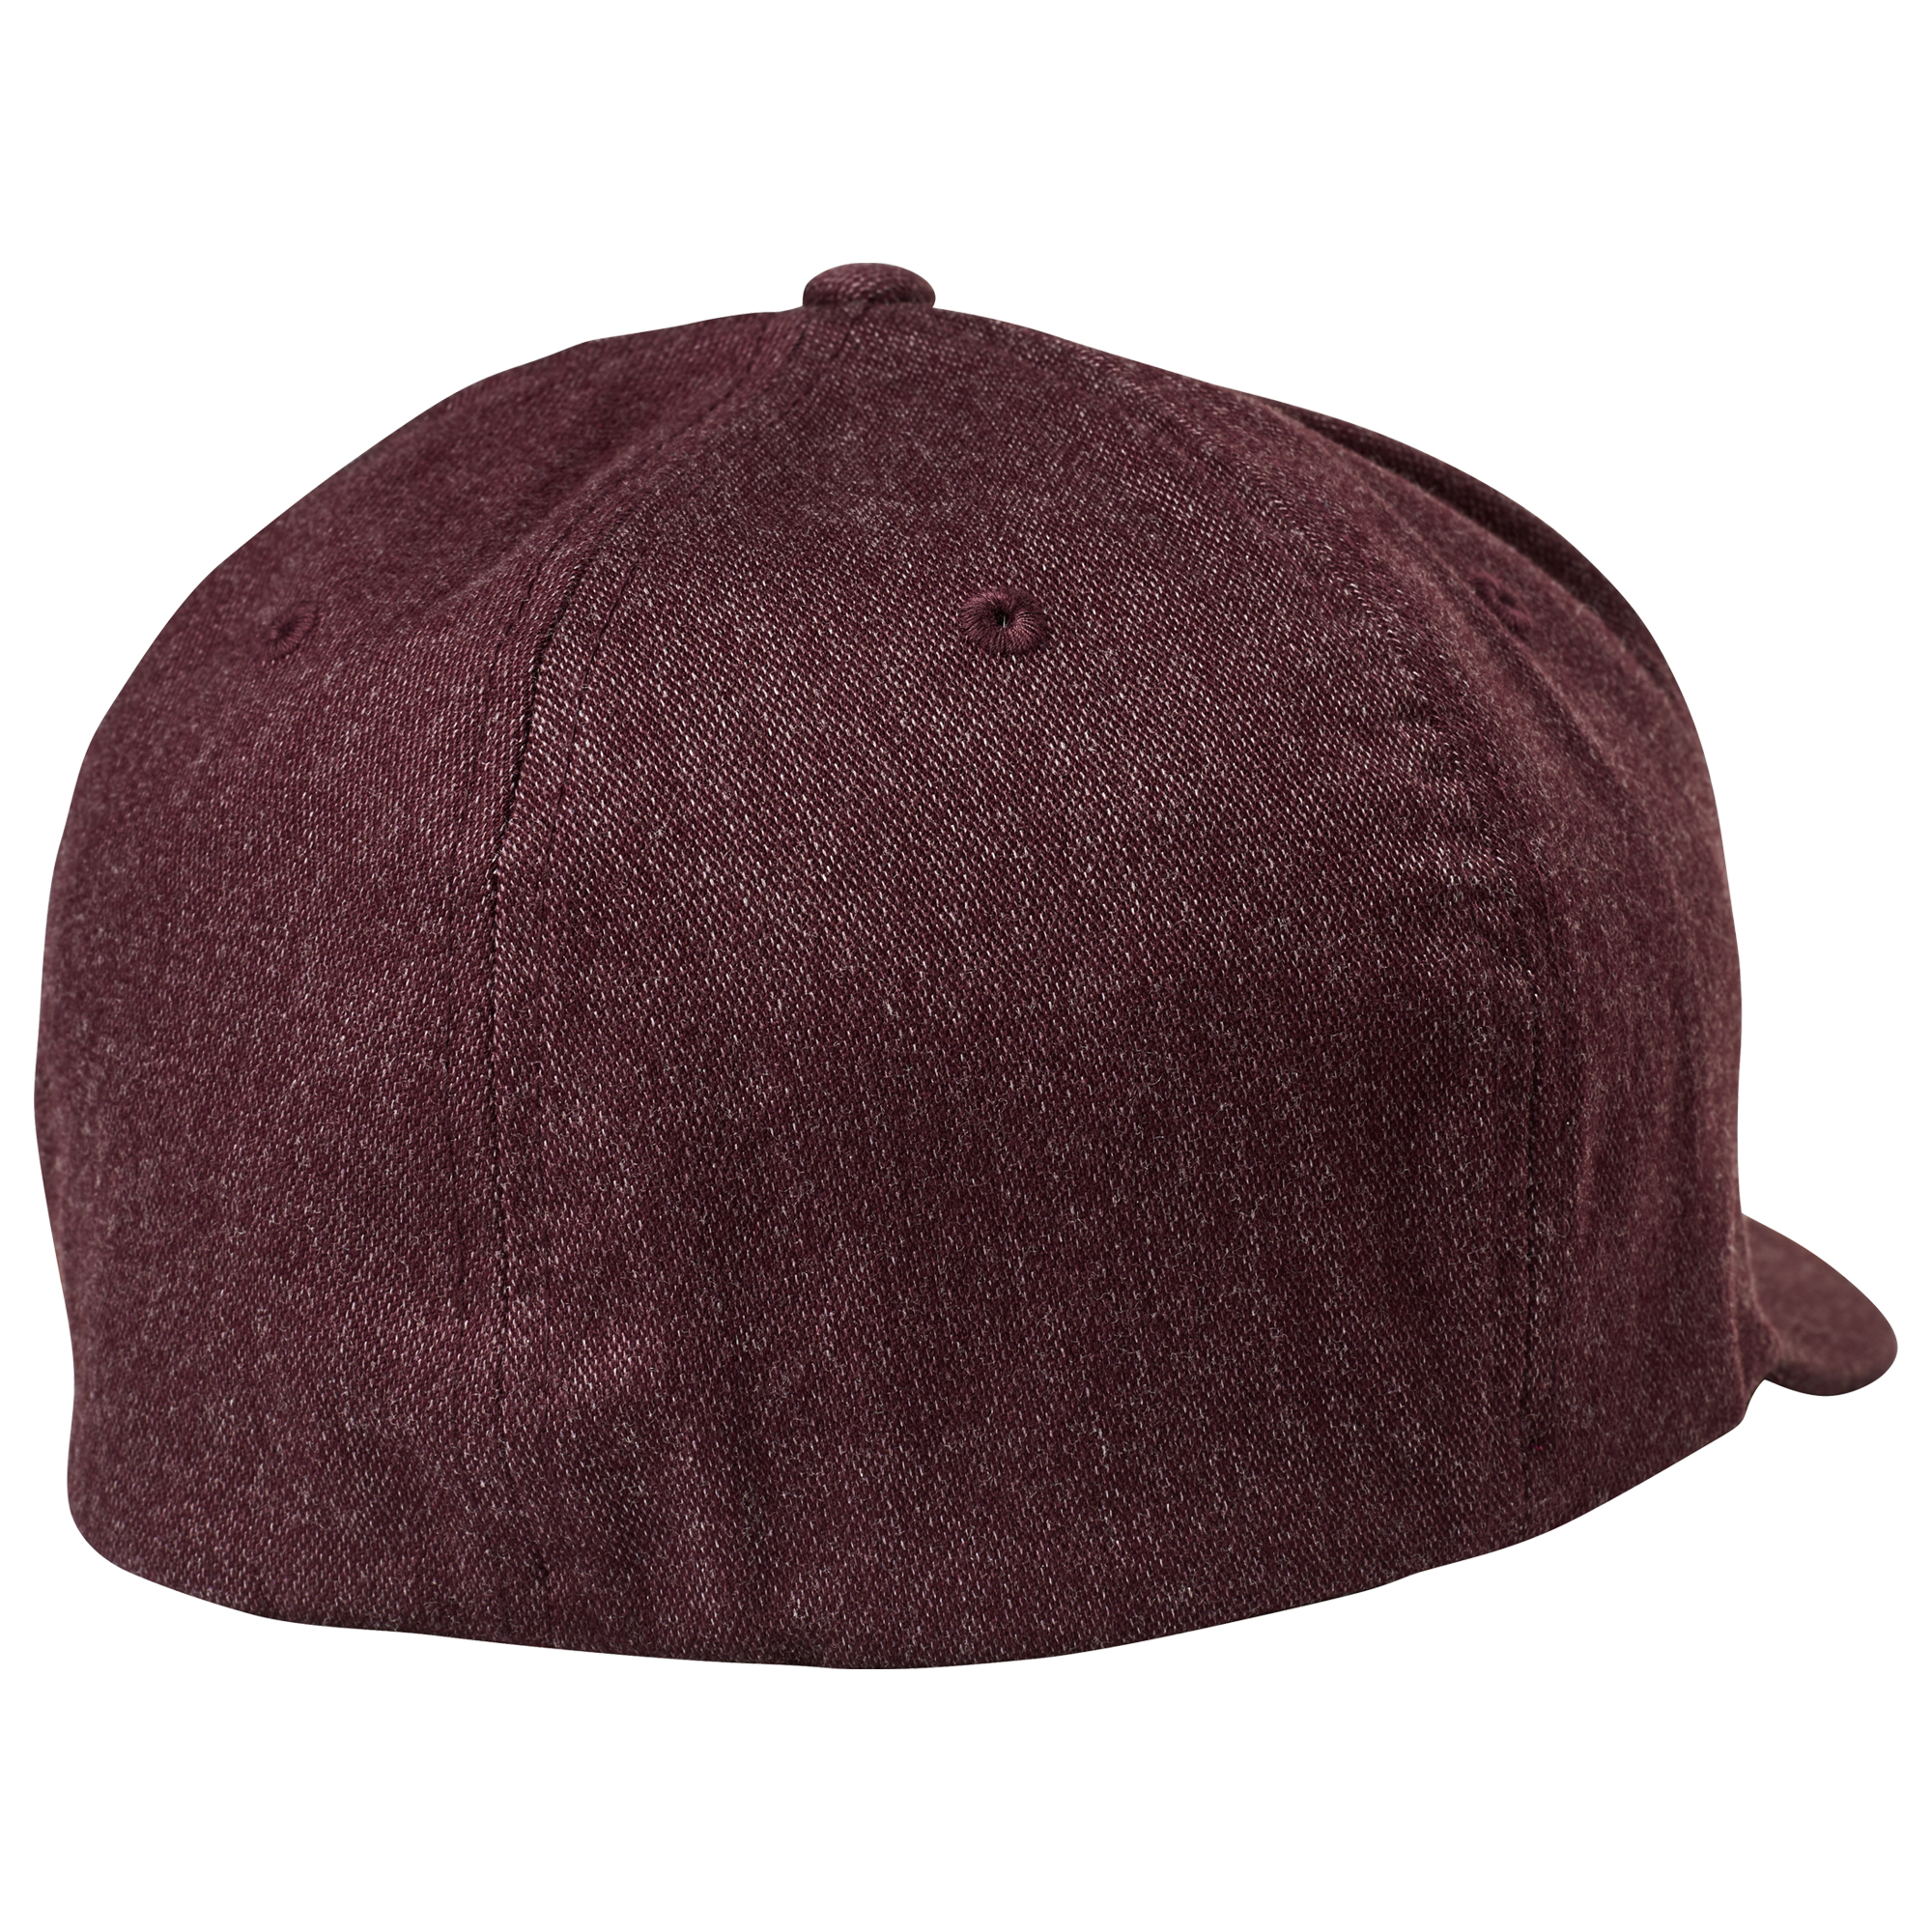 Fox-Racing-Mens-Clouded-Flexfit-Hat-Cap-Stretch-to-fit-Design-Curved-Bill thumbnail 13